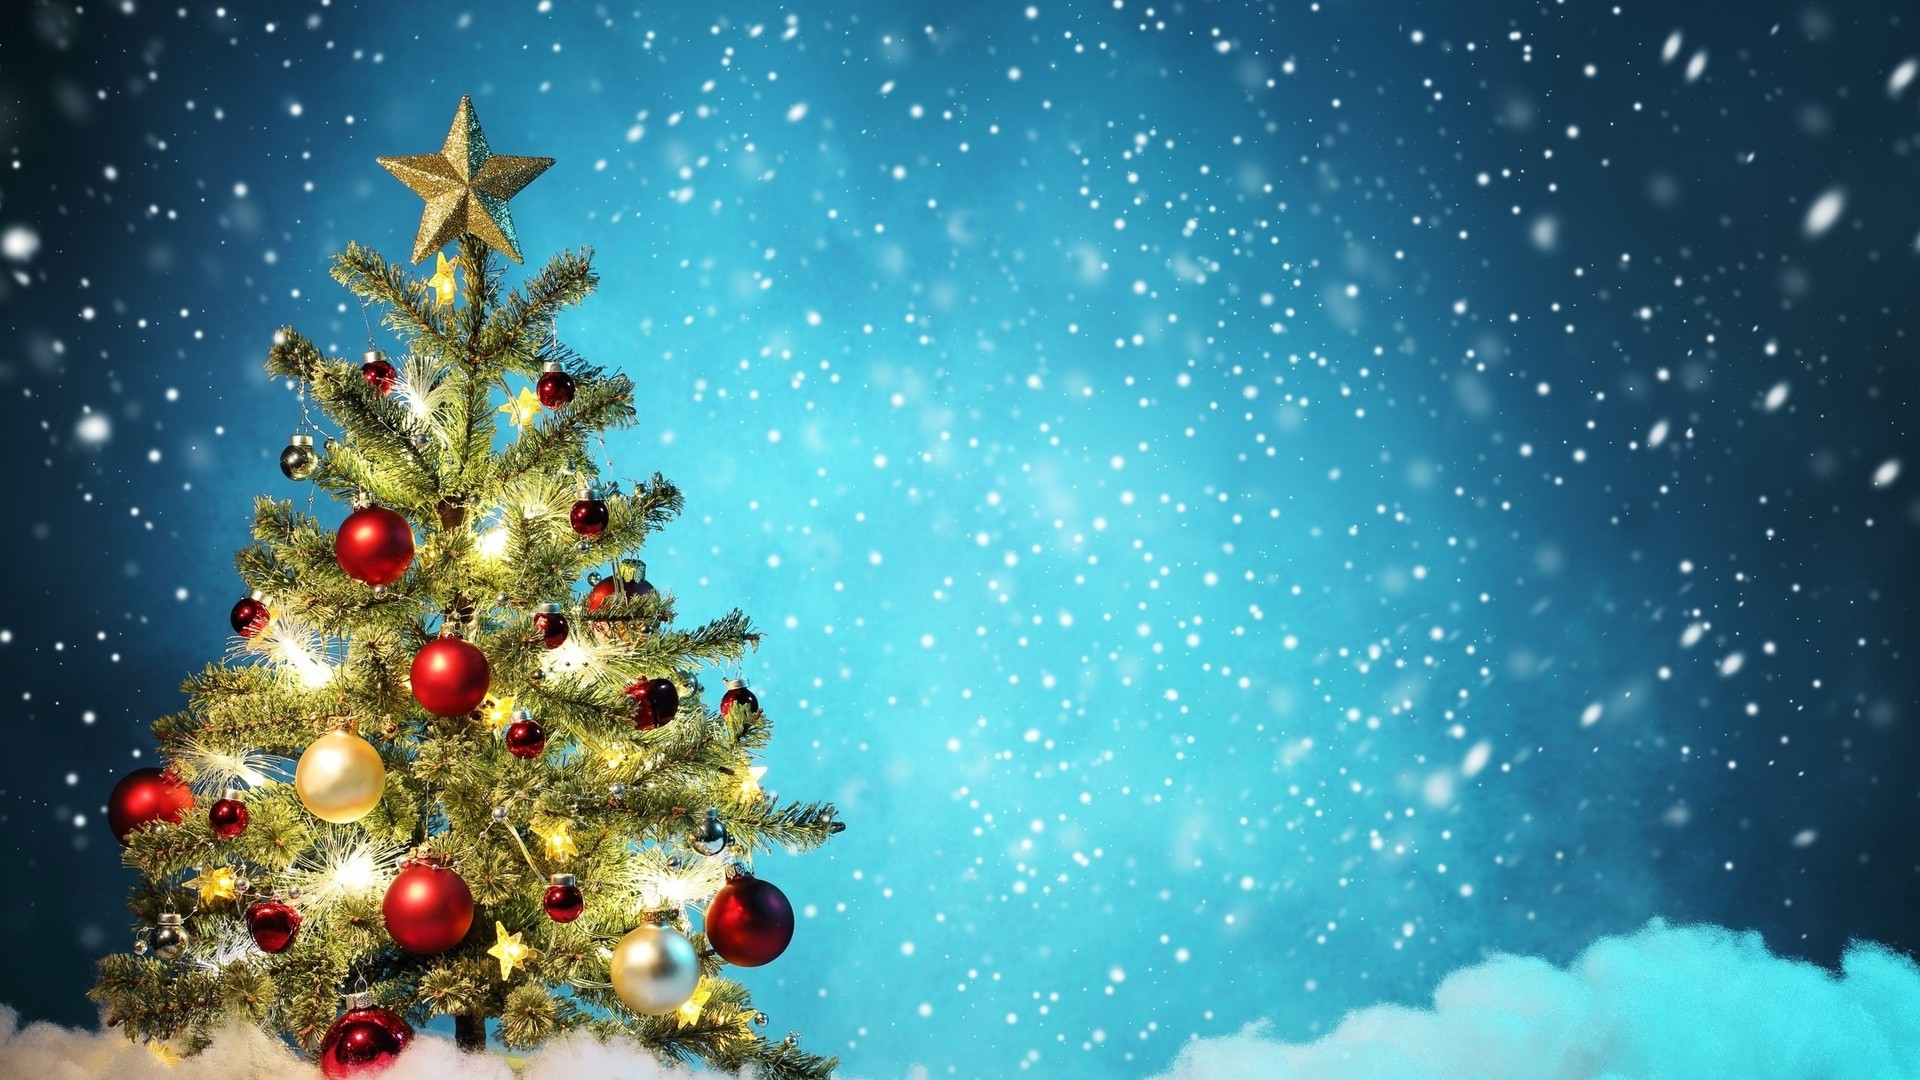 Pictures Christmas Backgrounds Desktop Wallpapers High Definition 1920x1080